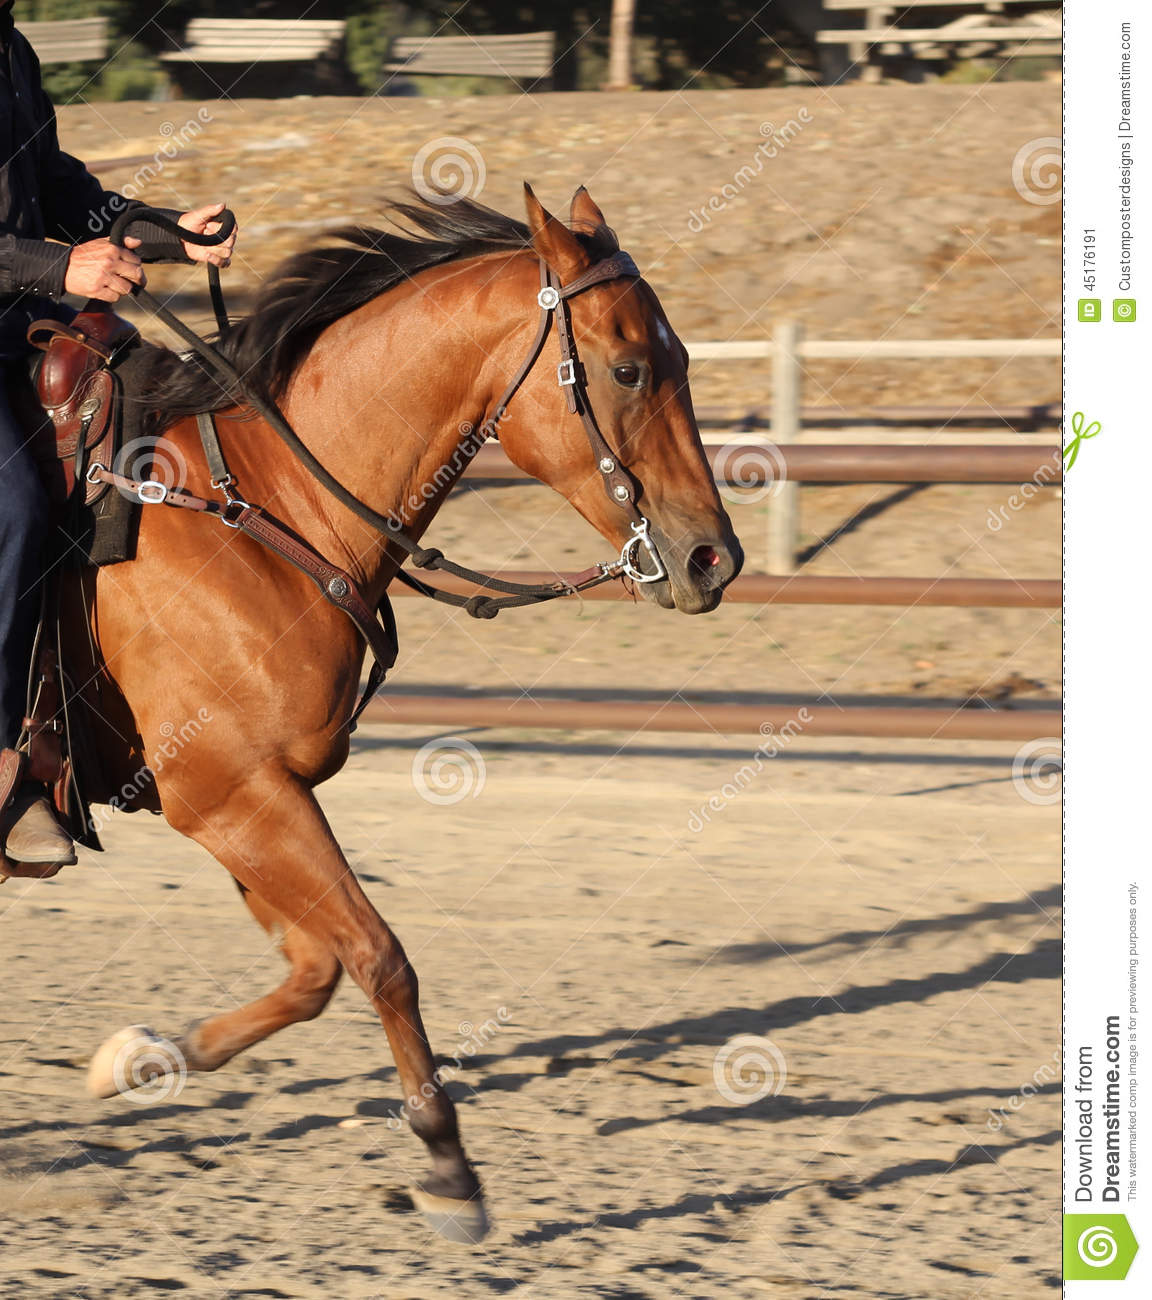 Download A Cowboy Riding His Horse In An Arena. Stock Image - Image of daytime, light: 45176191